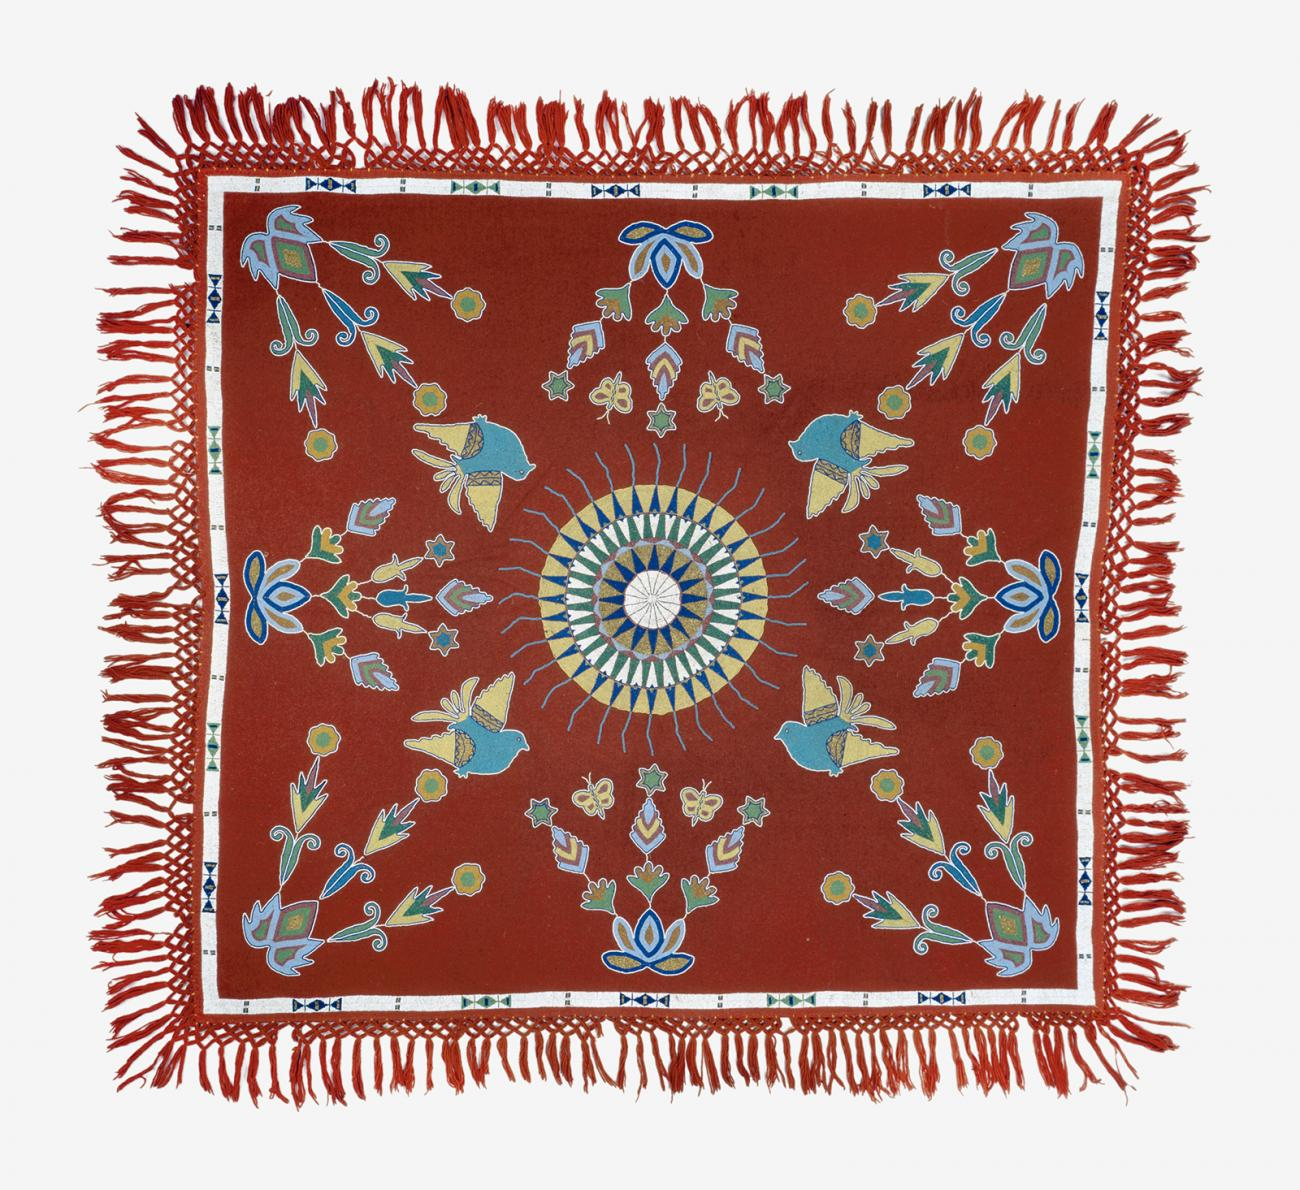 A red tablecloth with a circle in the middle and different designs around it.